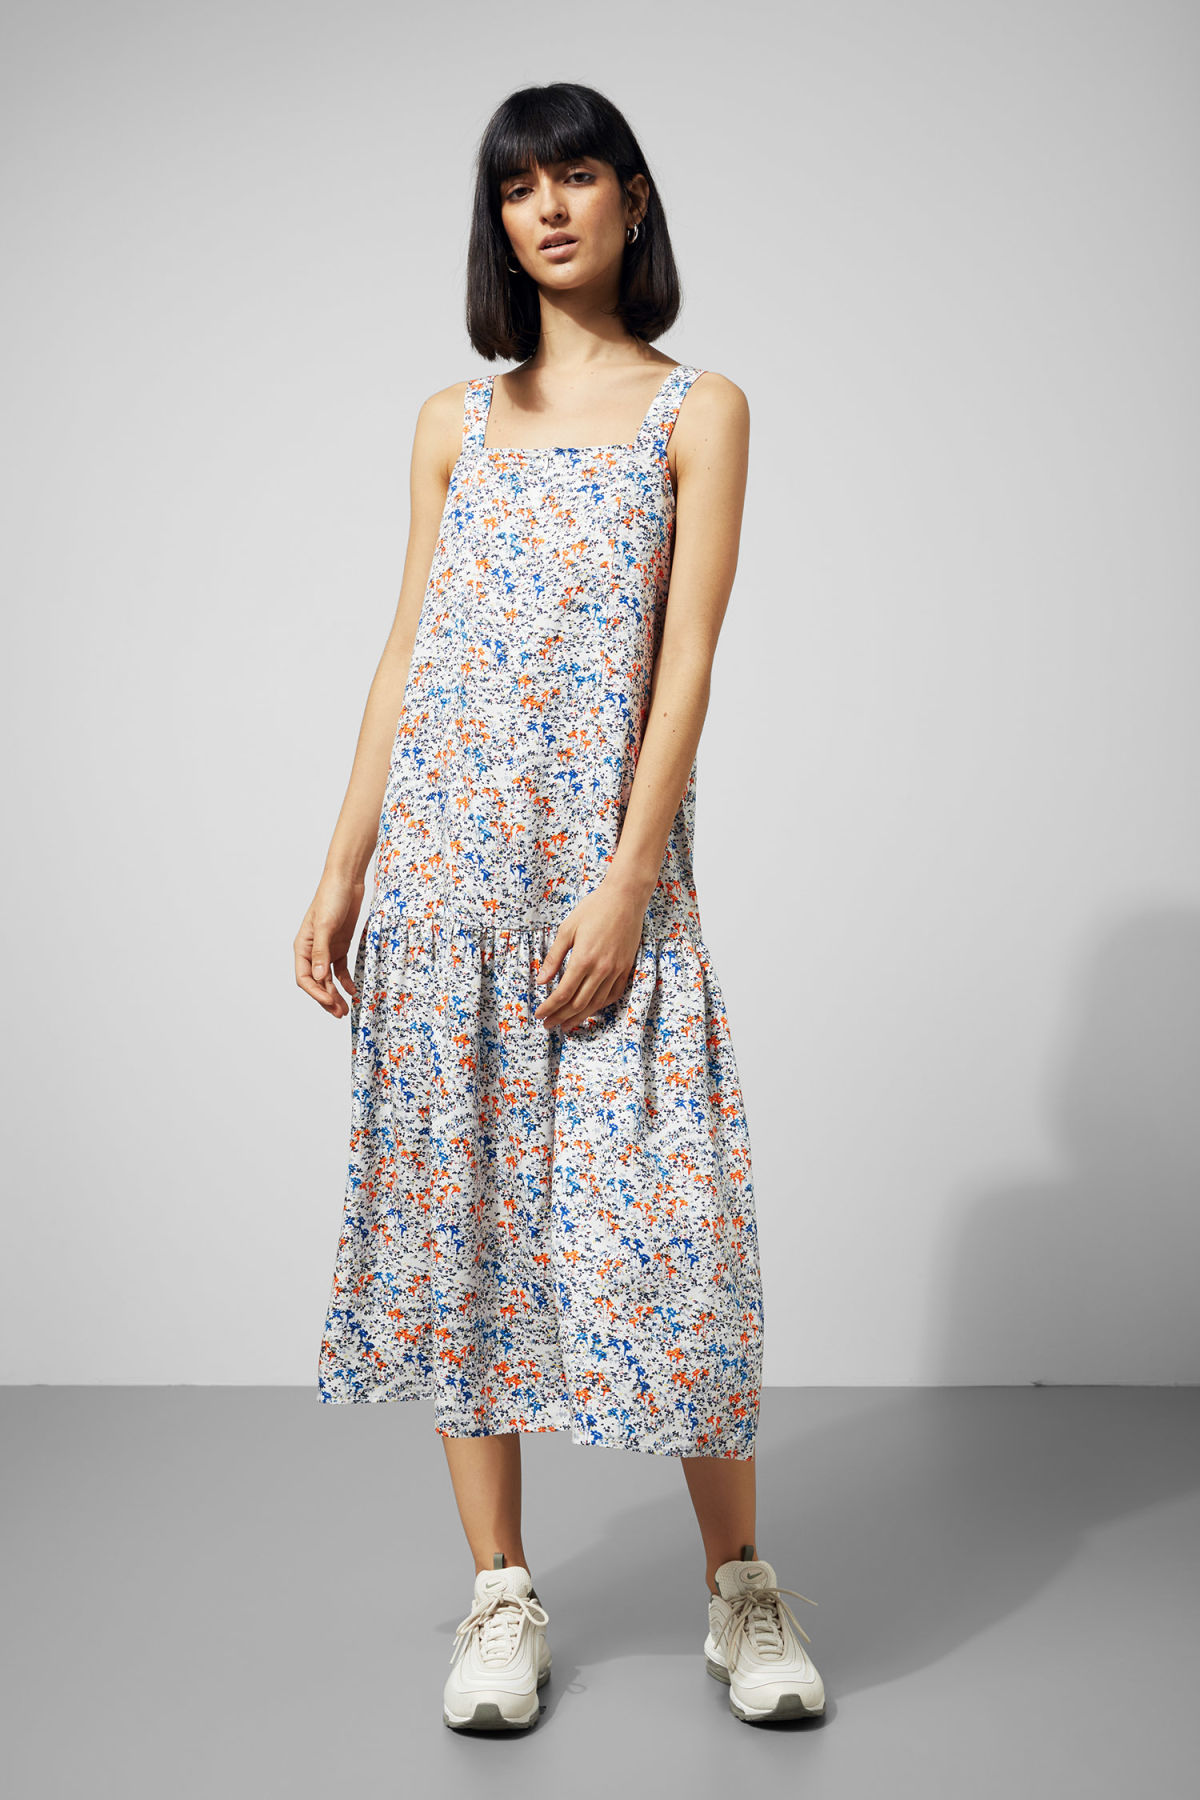 Weekday Hockney Dress - White Outlet How Much Discounts Cheap Price Geniue Stockist Cheap Price Free Shipping How Much Discount Eastbay TIyqG